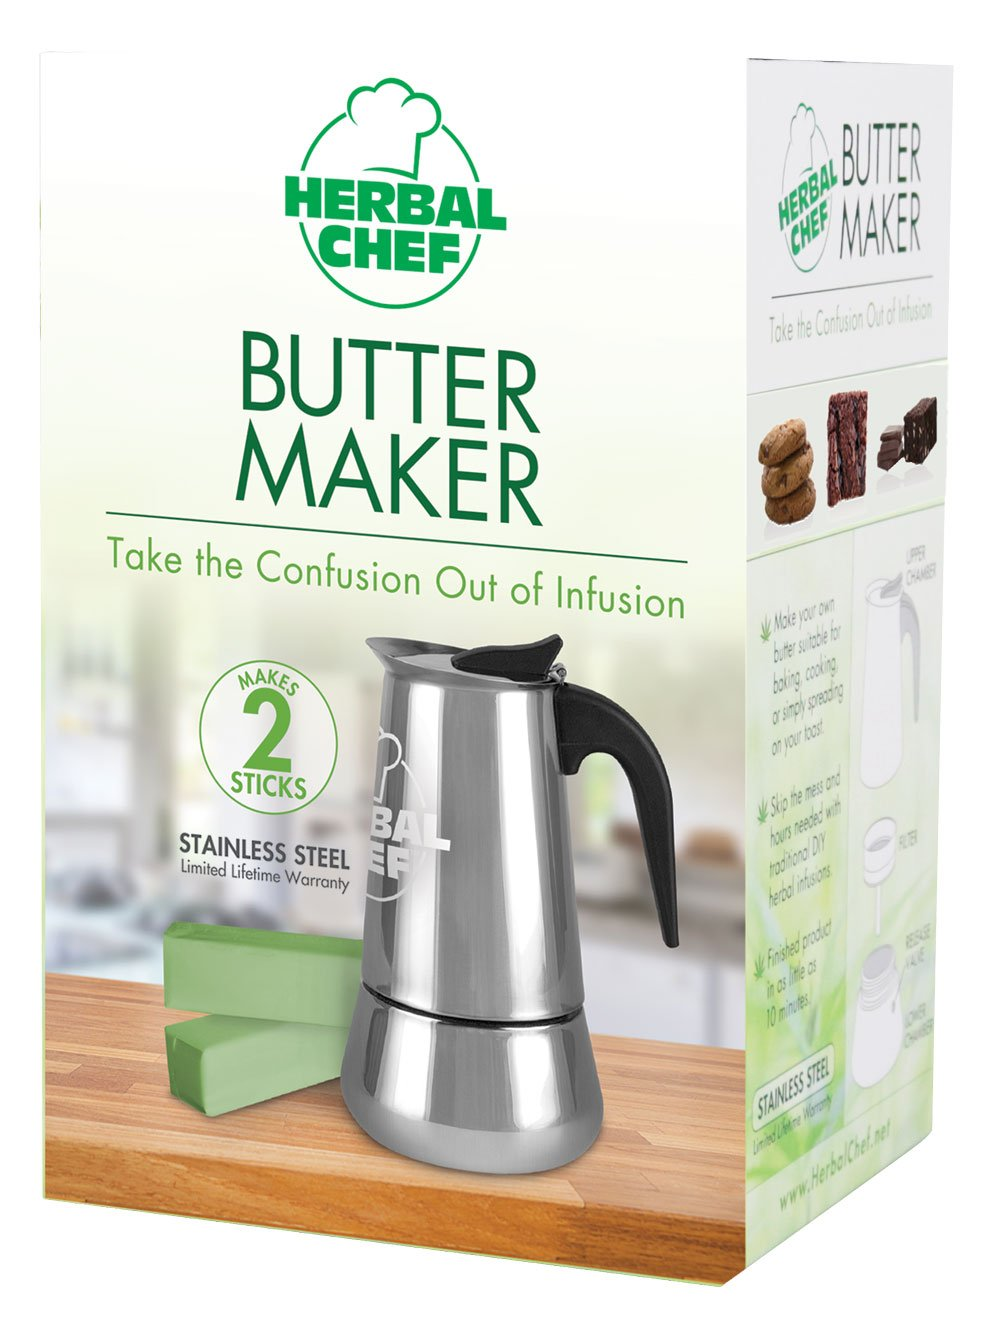 Herbal Chef Butter Maker - (1 Stick)